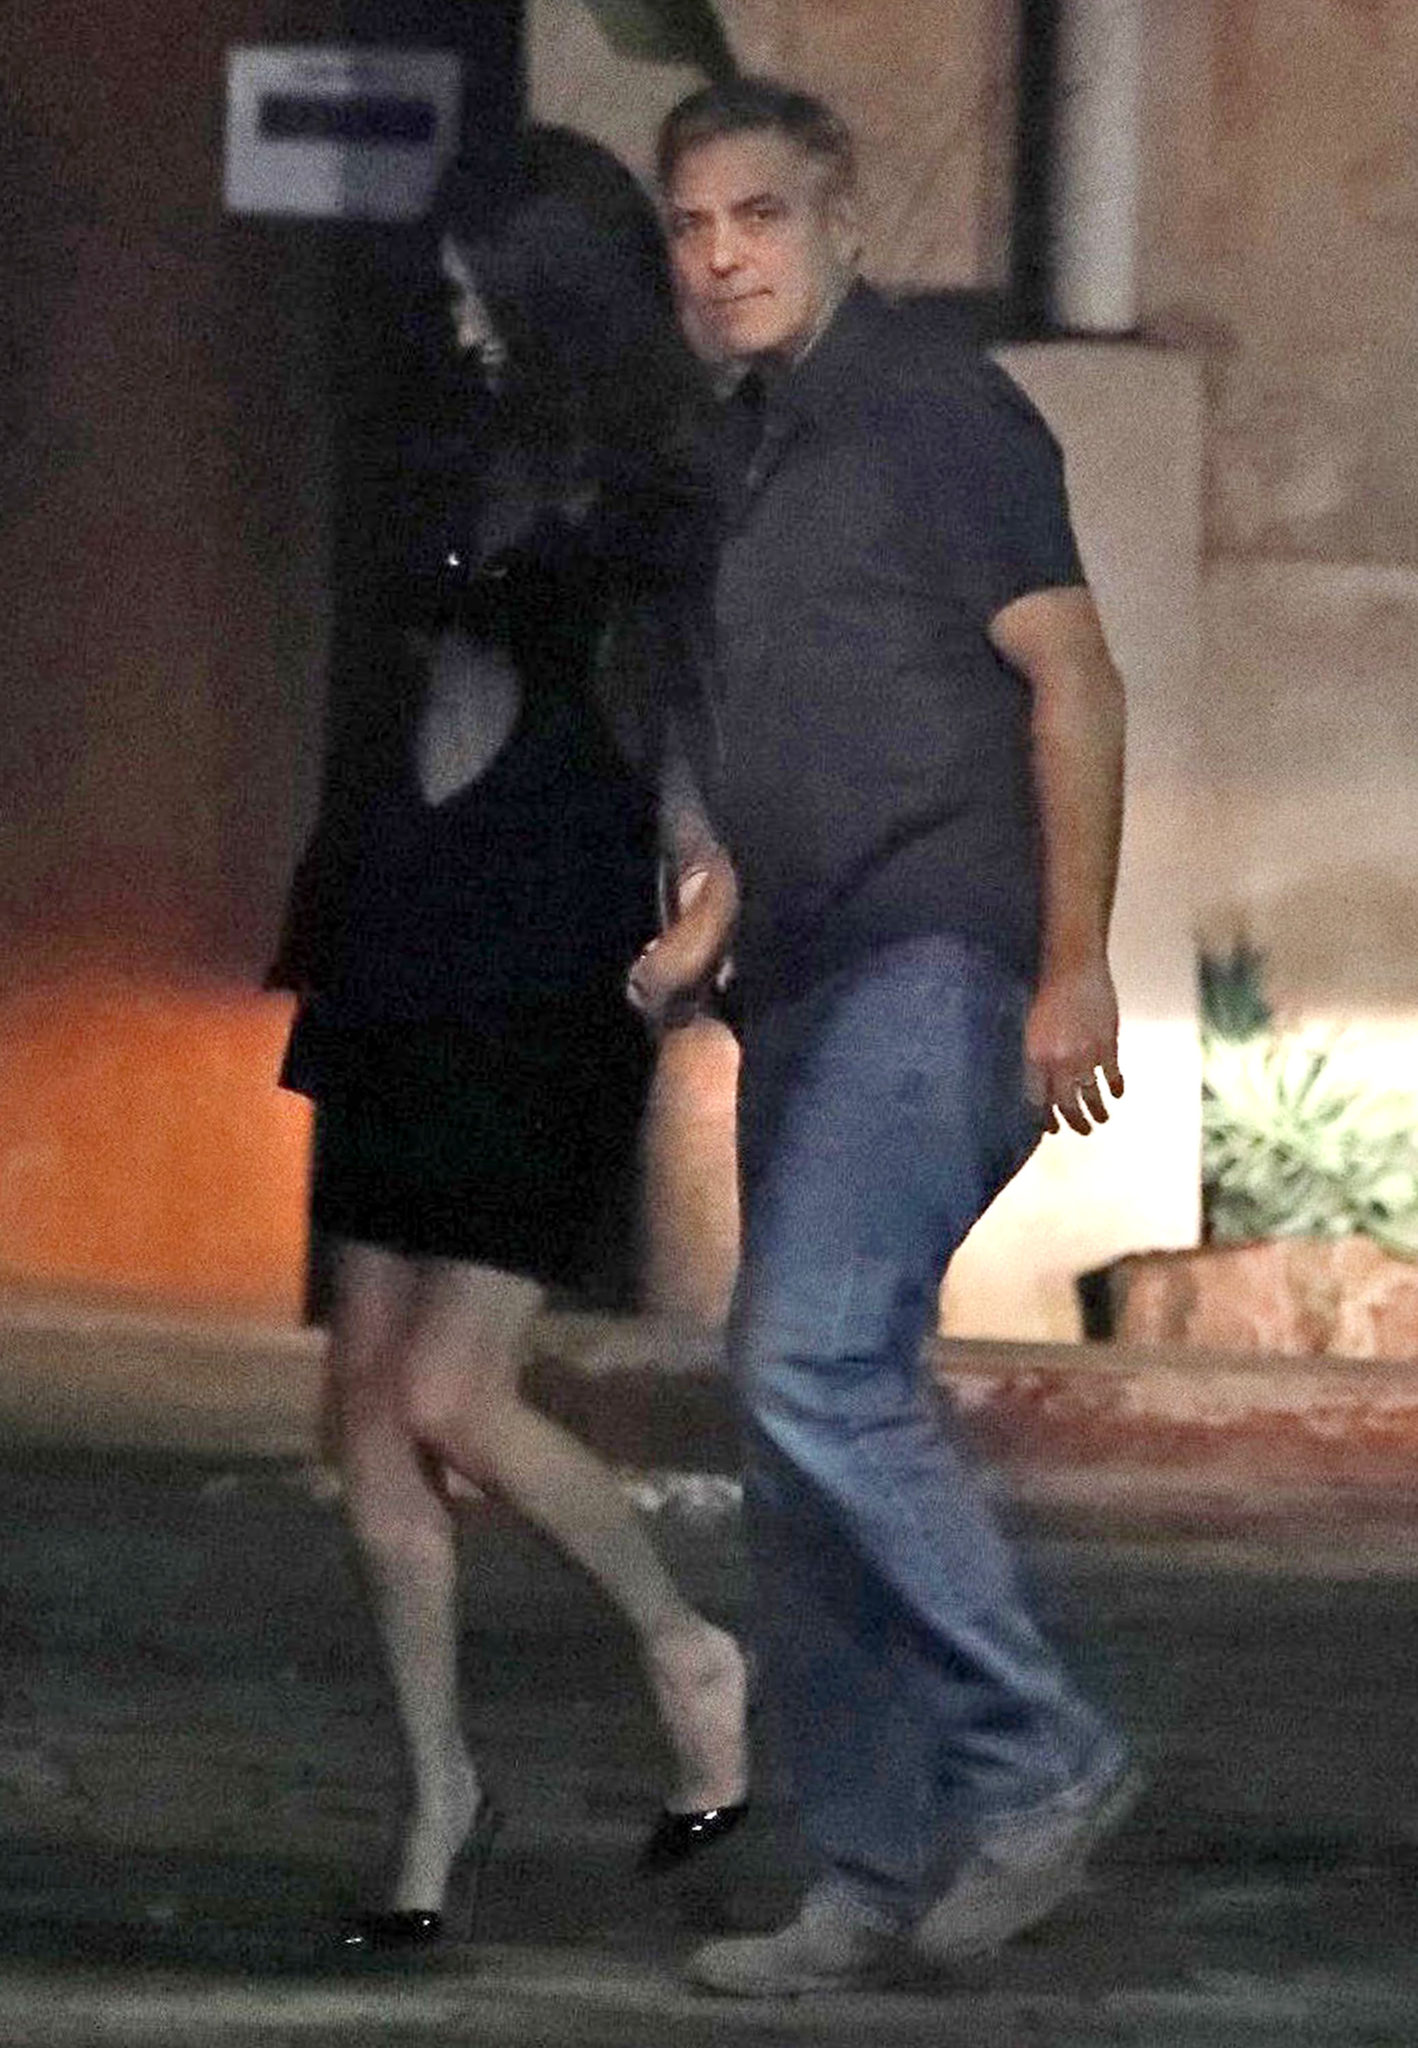 George and Amal Clooney at dinner in Spain FFN_OHPix_Clooney_George_020217_52302578